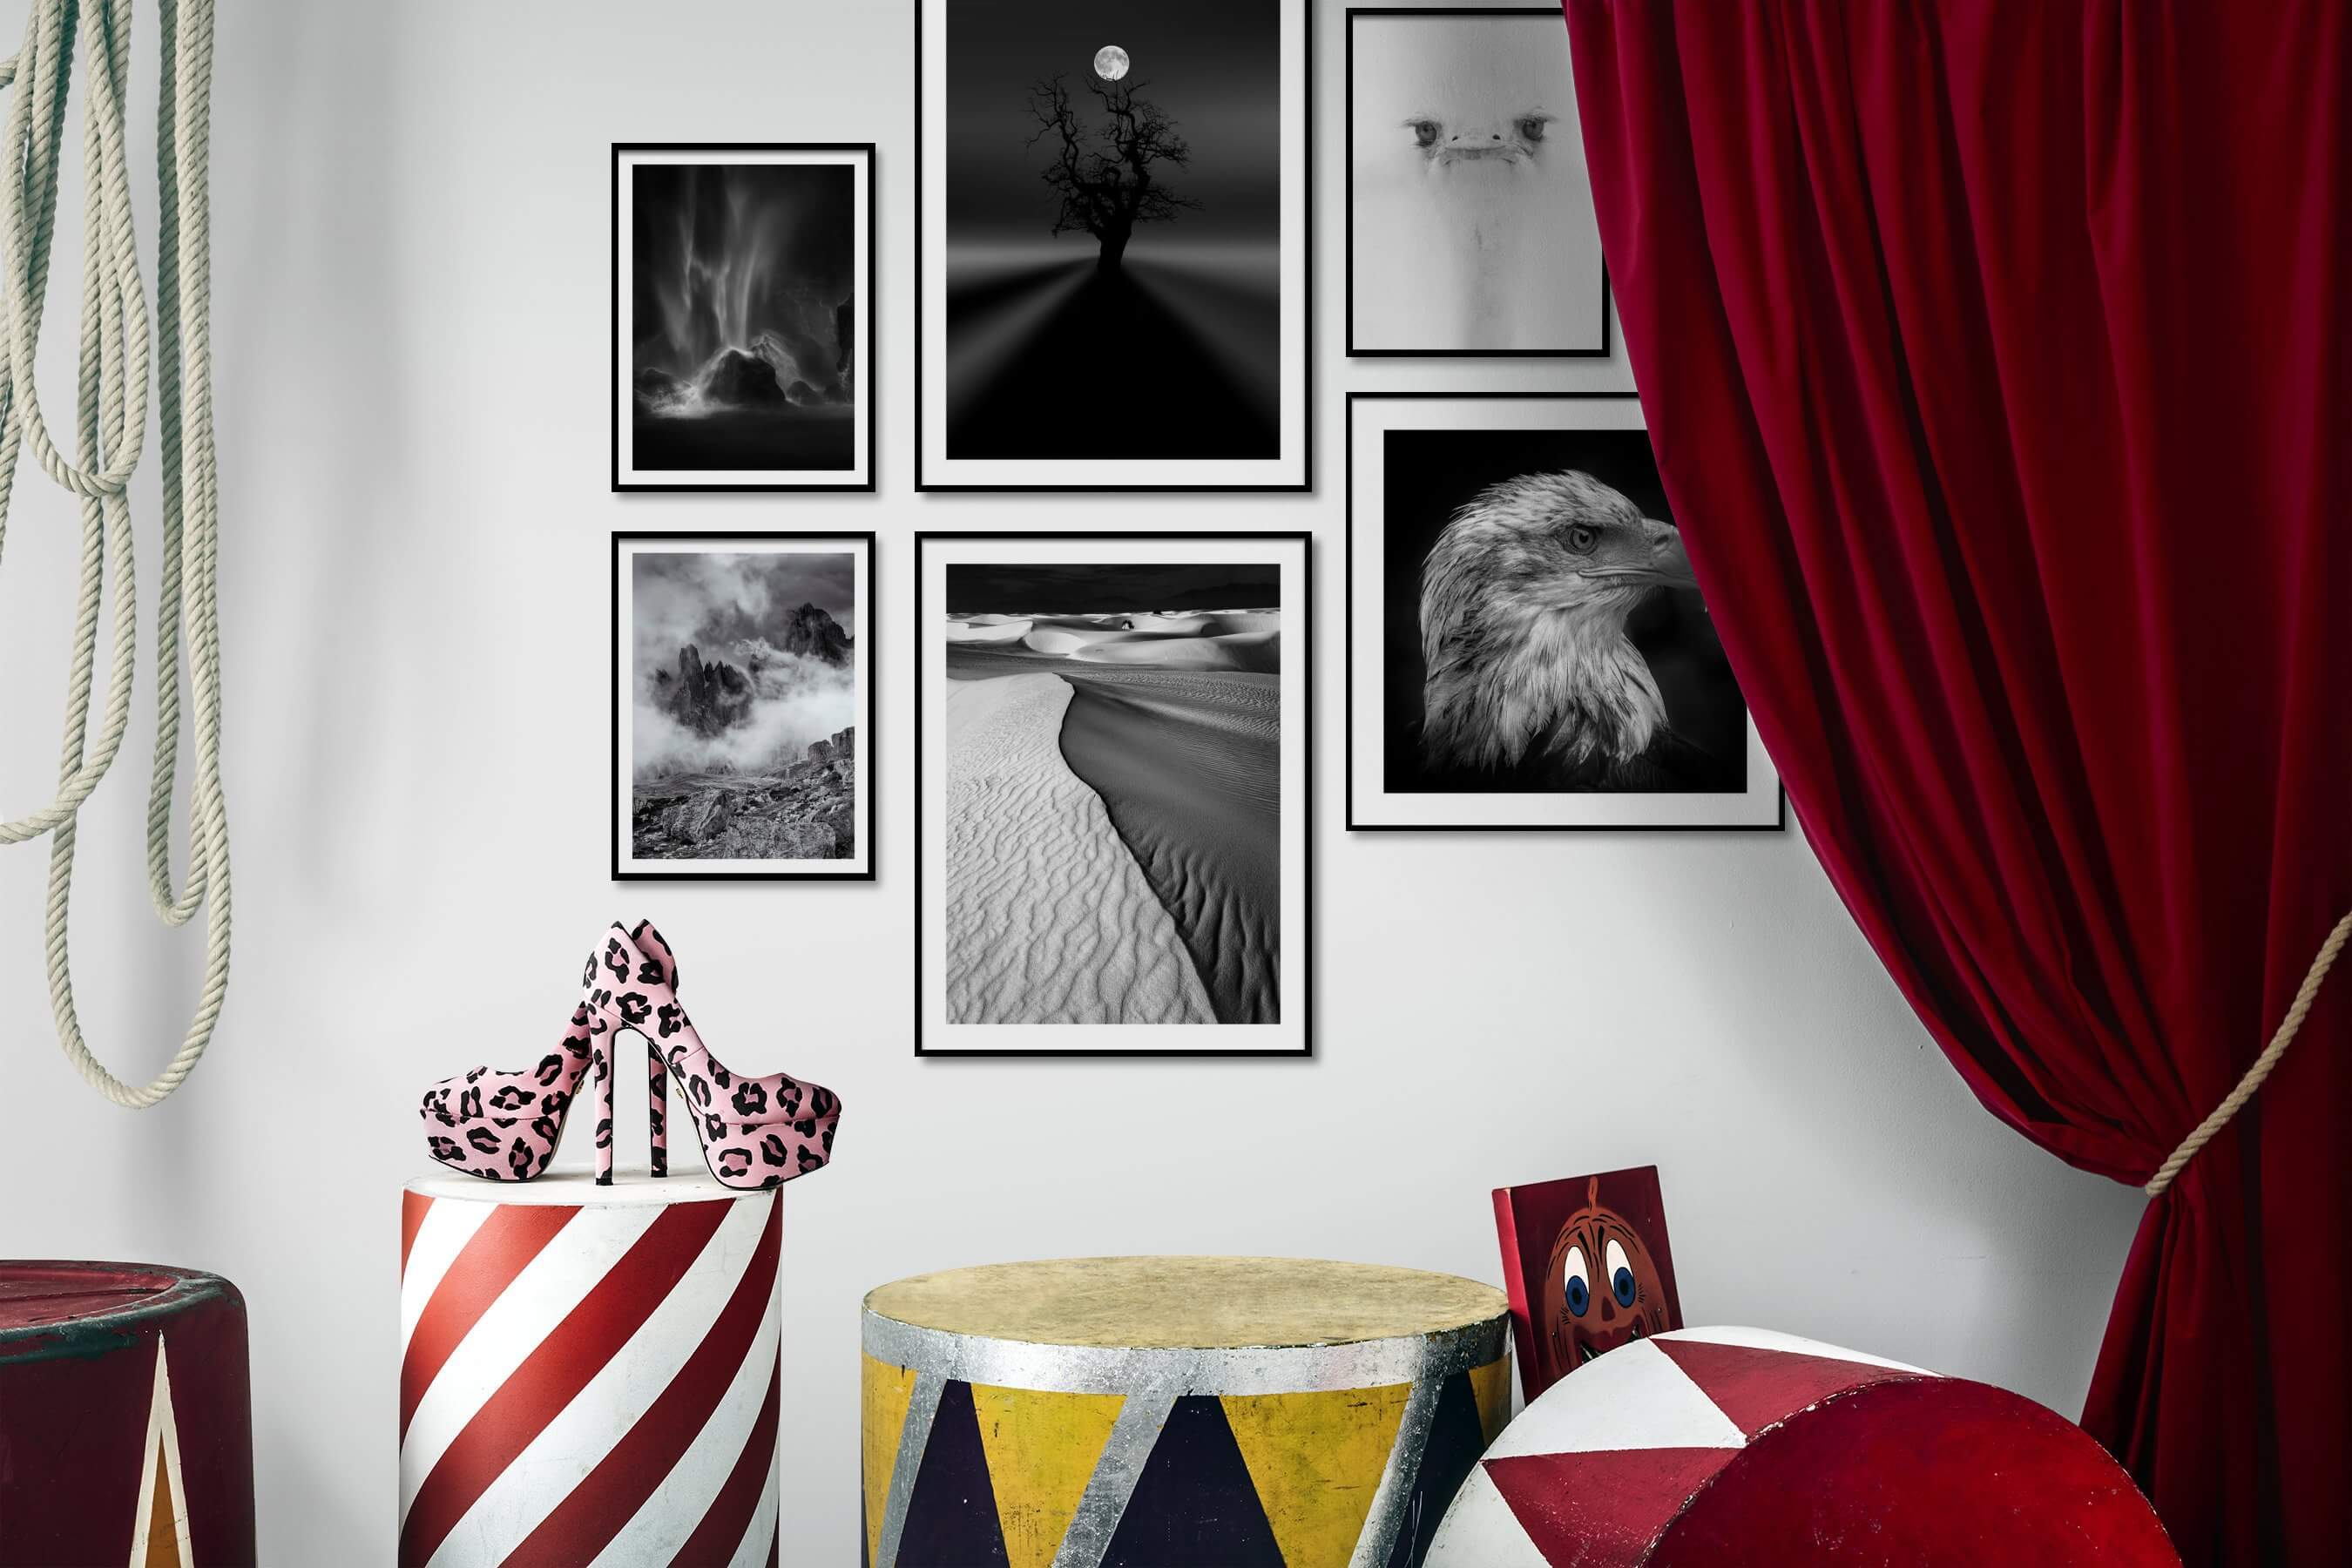 Gallery wall idea with six framed pictures arranged on a wall depicting Black & White, Nature, For the Minimalist, Bright Tones, Animals, and Americana